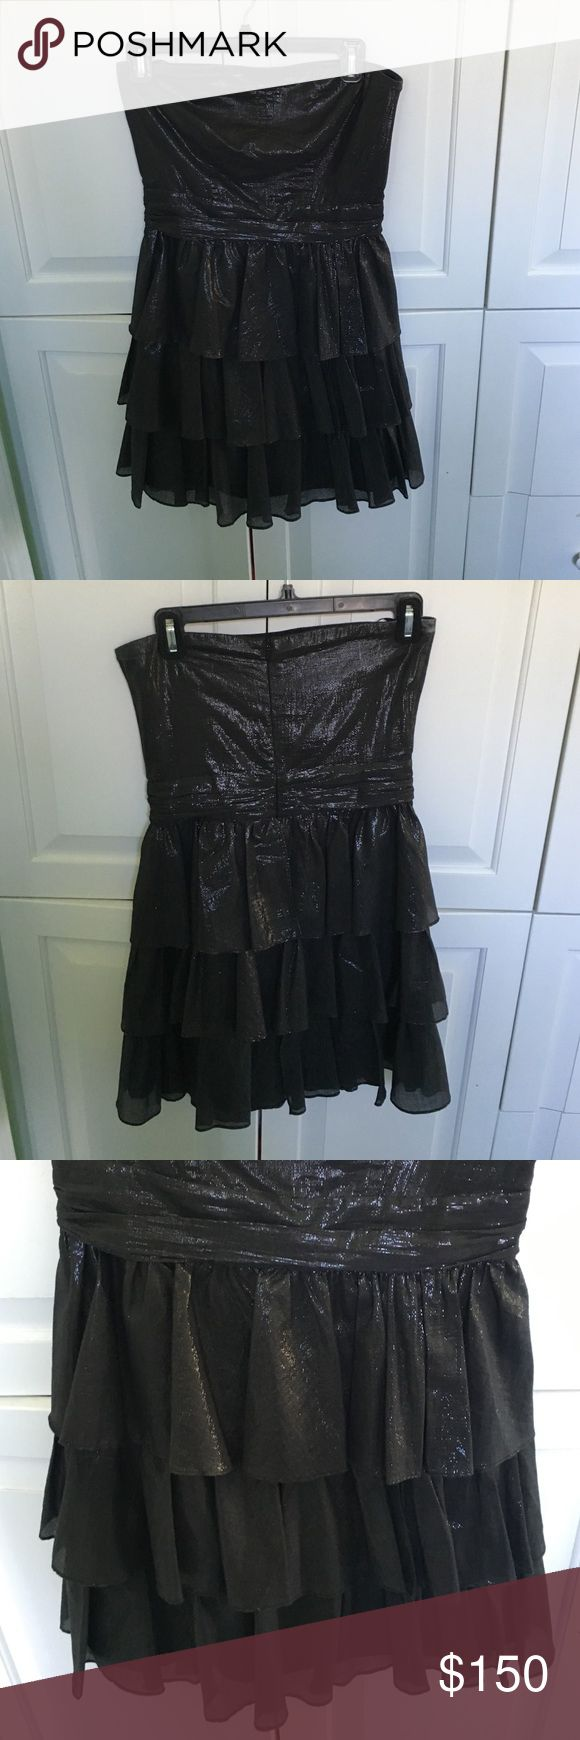 Cocktail attire dress Black/metallic color, Ruffles, worn once Charlotte Ronson Dresses Strapless